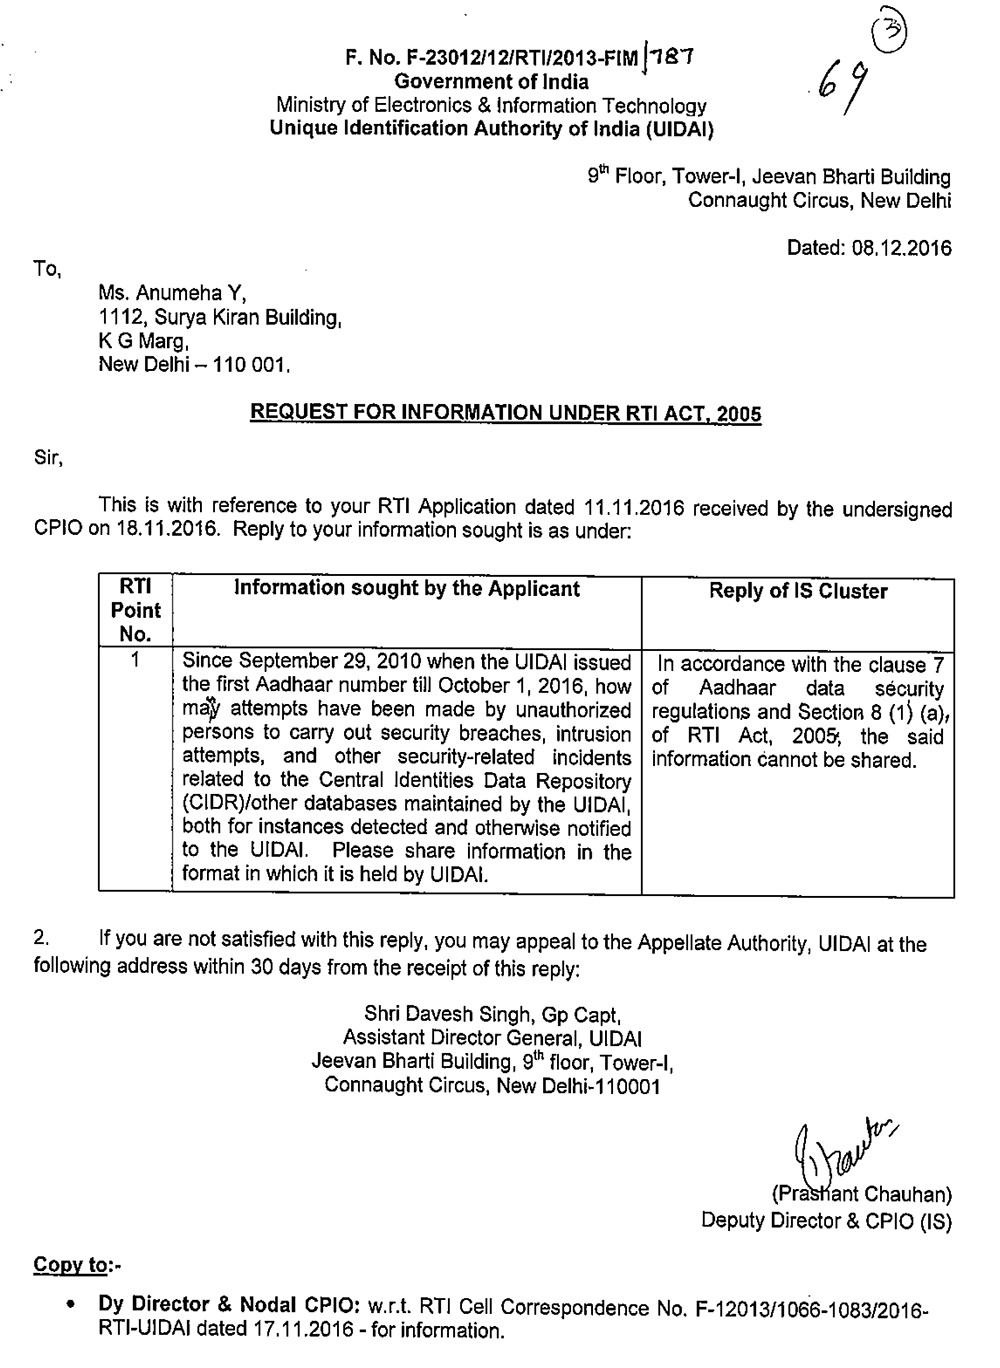 The Unique Identification Authority of India denied sharing information on data breaches under an RTI query filed by Scroll.in.